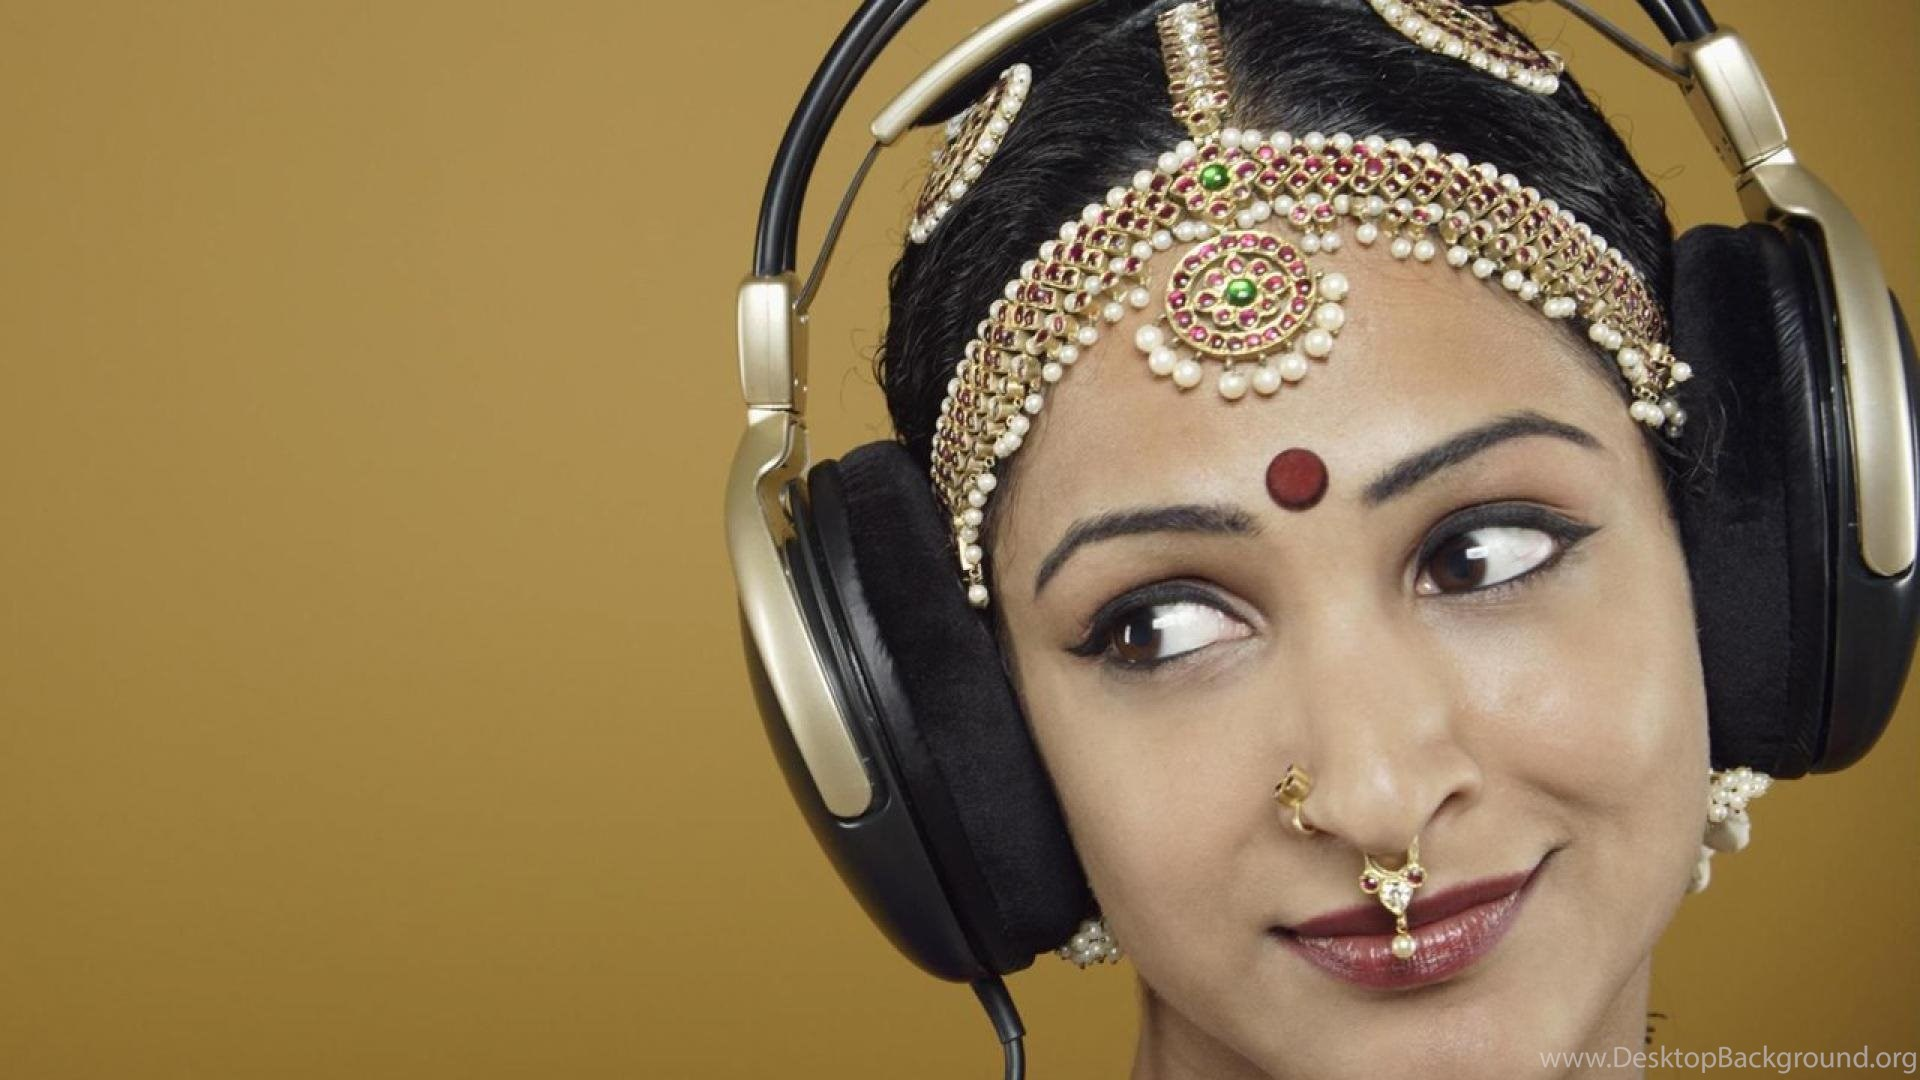 Indian Woman Headphones Girl Music Hd Wallpapers Wallpapers